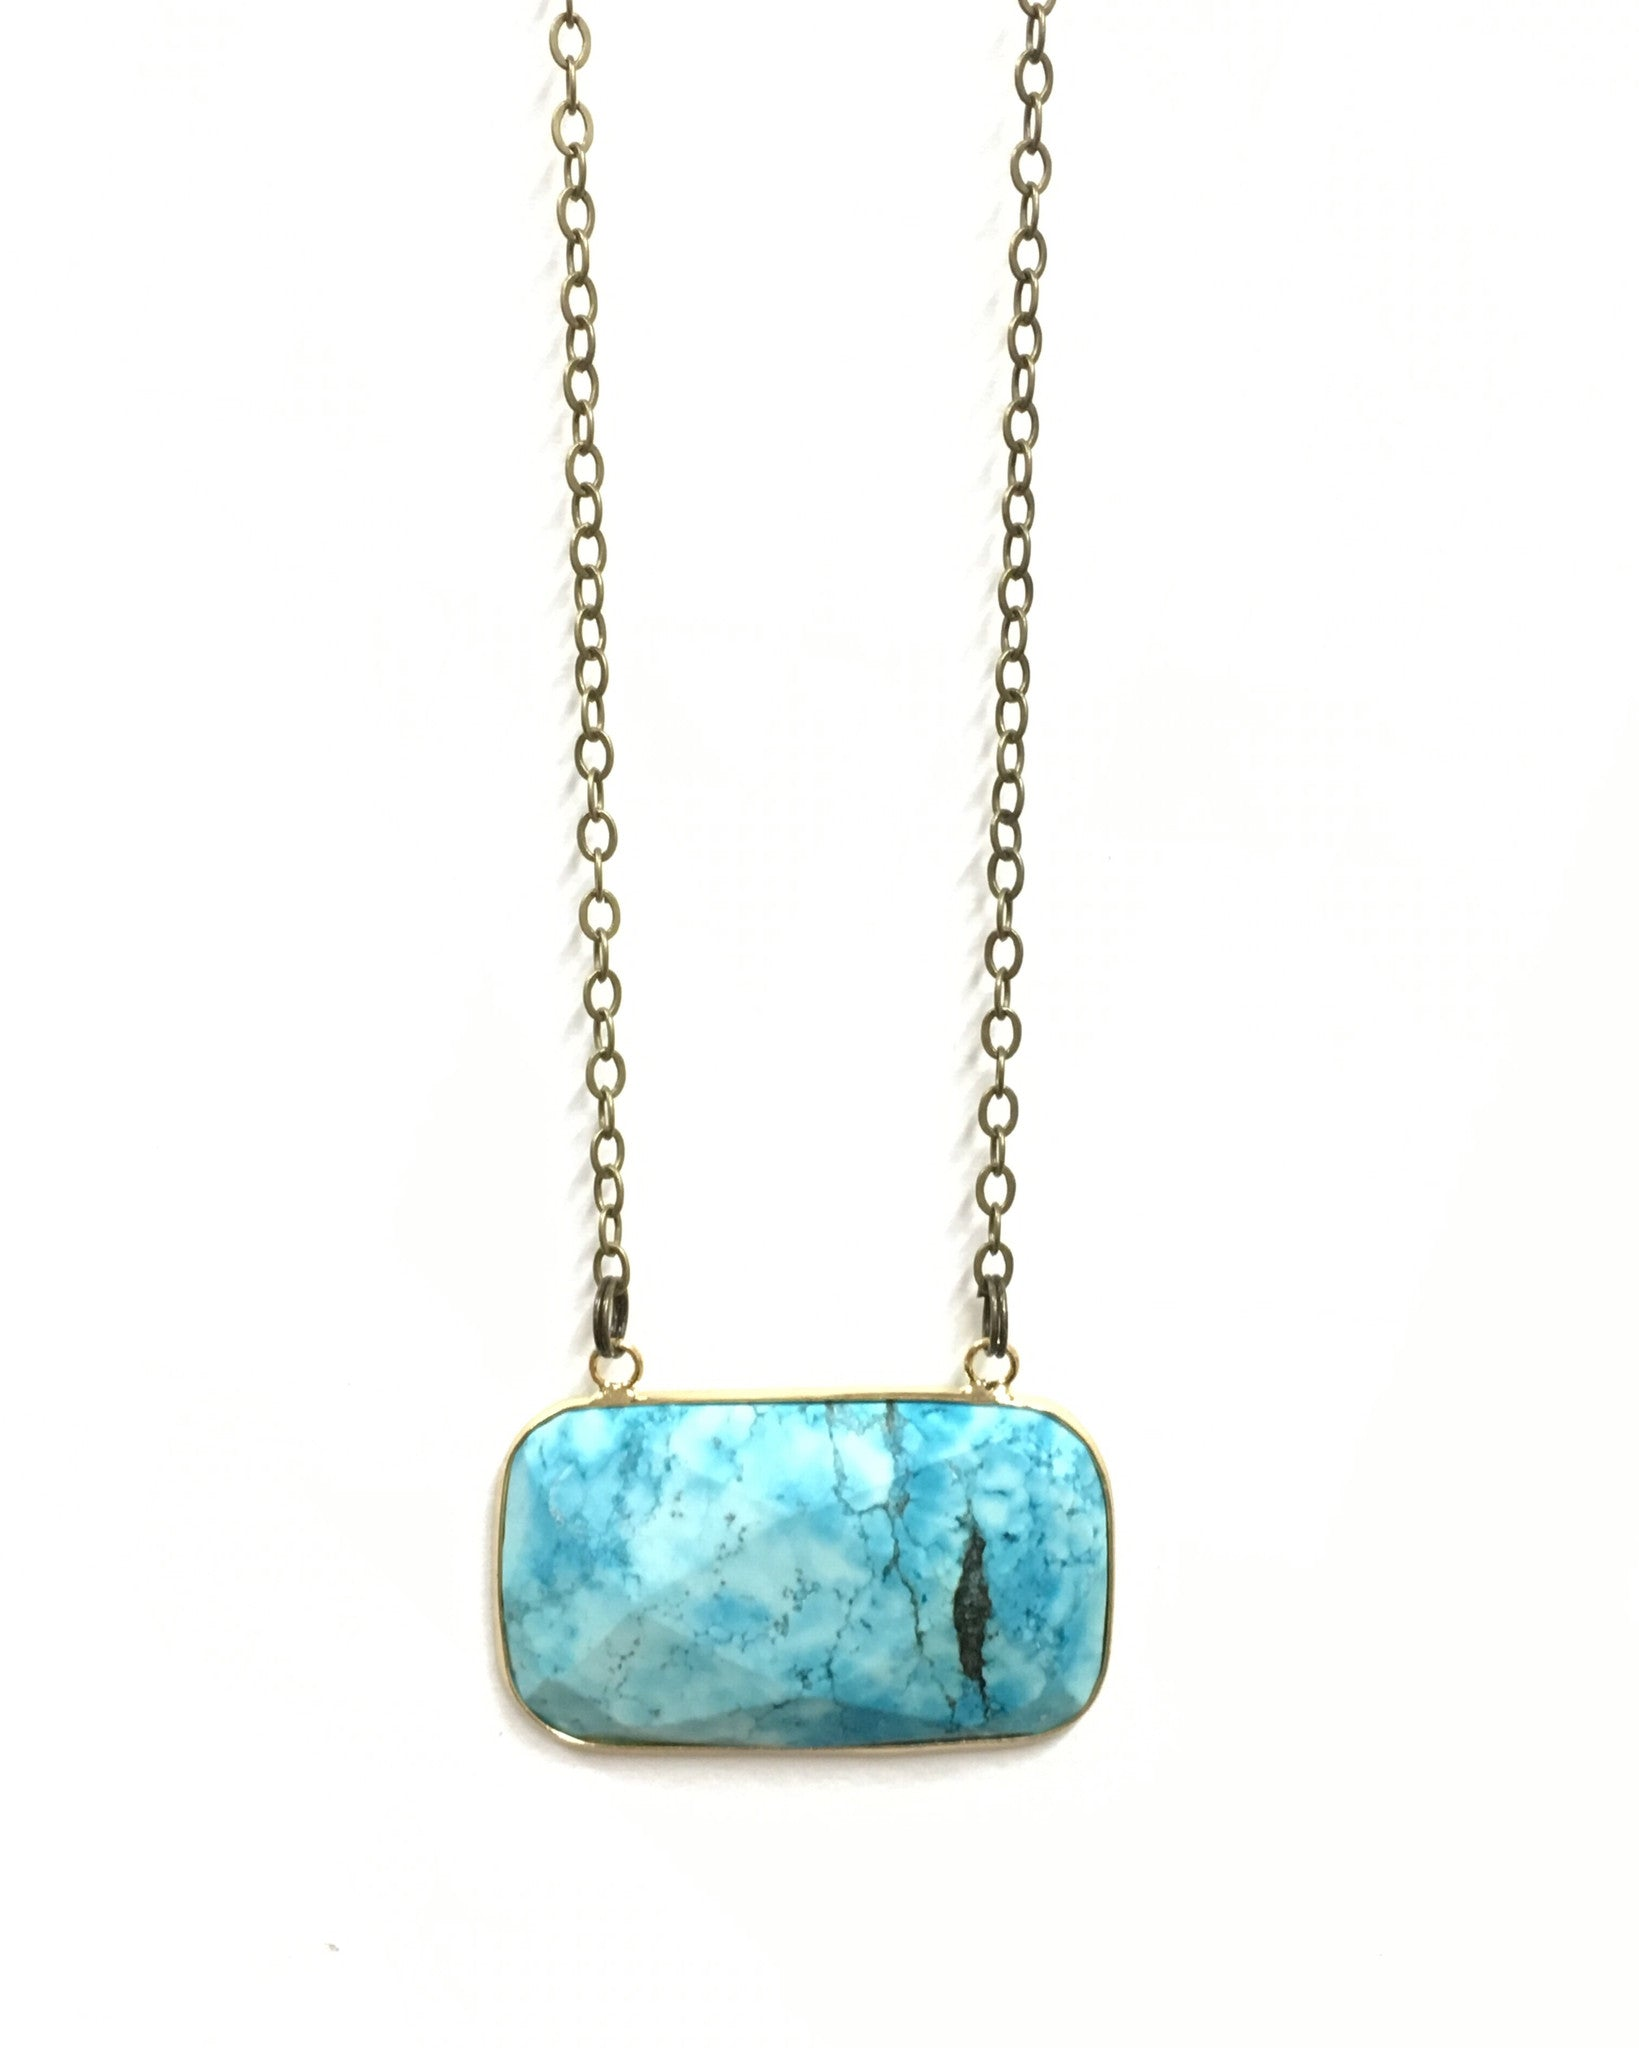 Korie Necklace